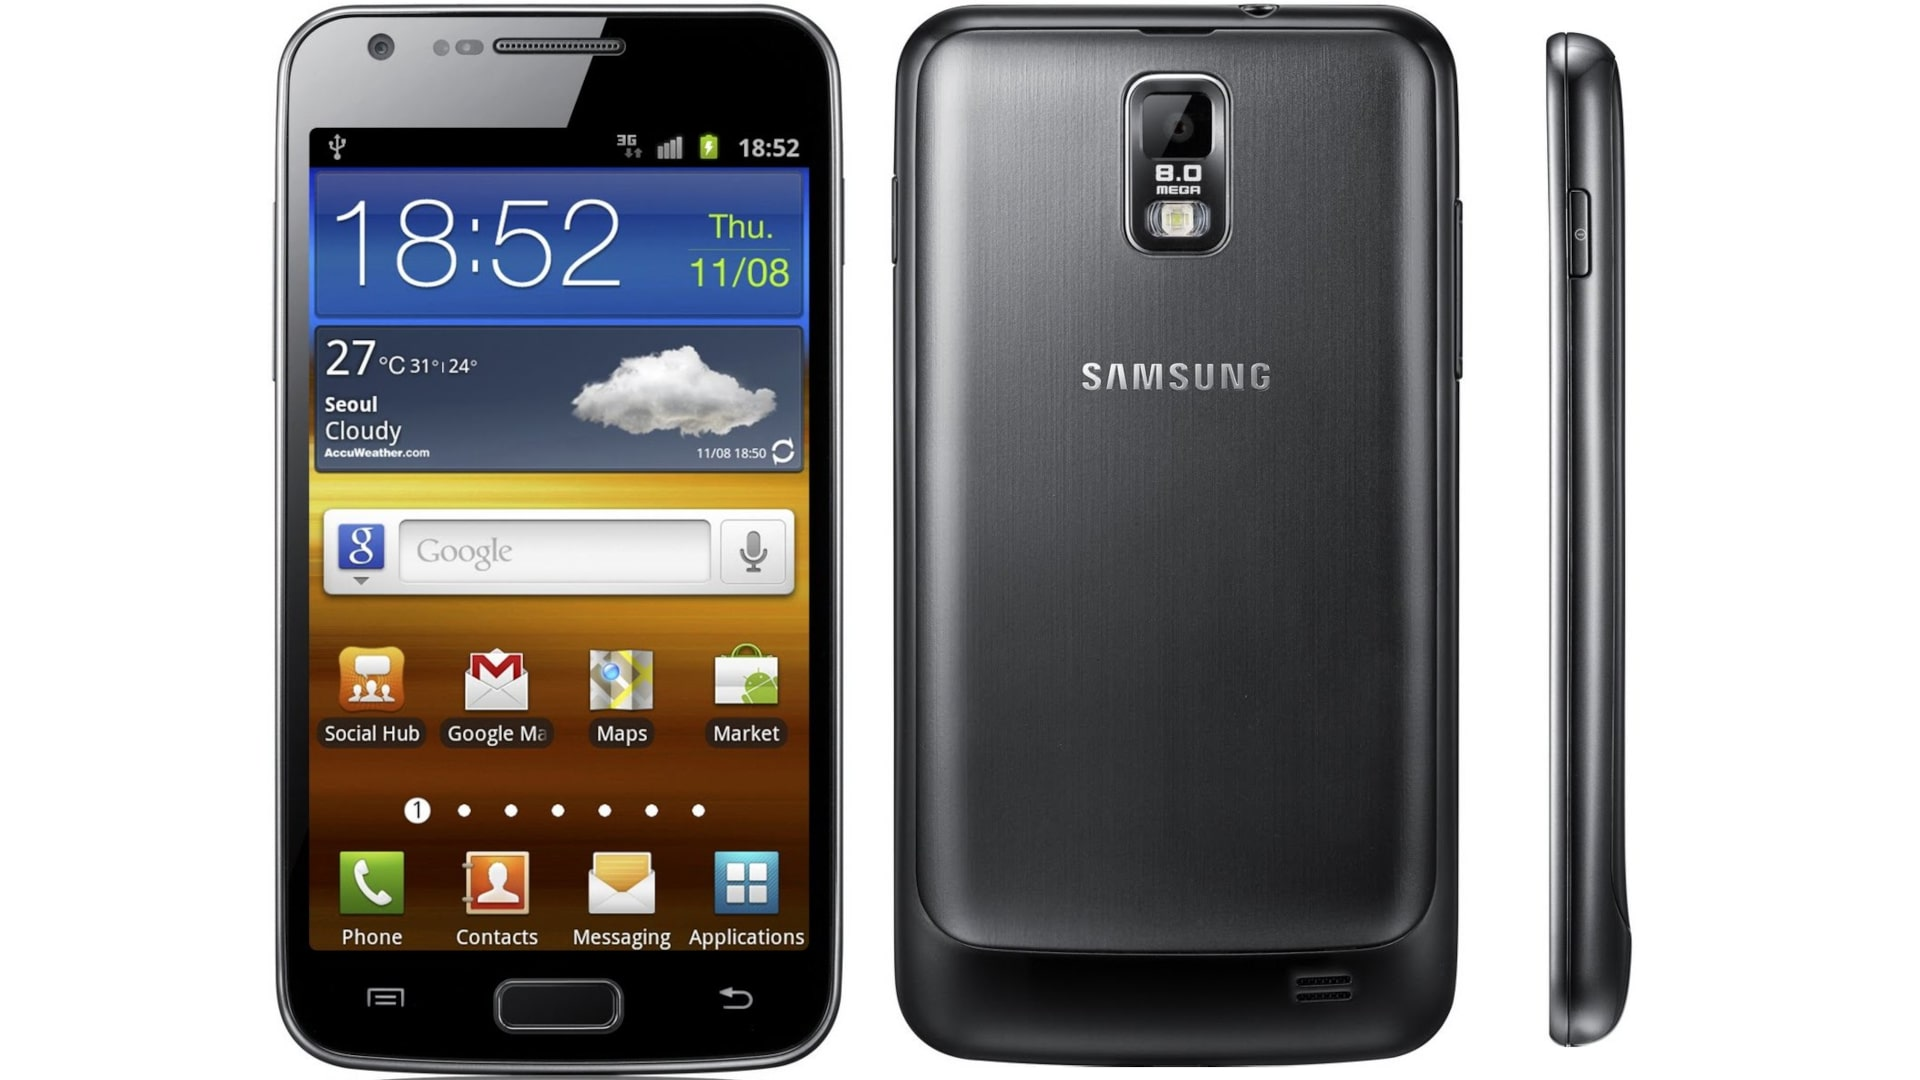 Samsung Galaxy S2 LTE Review